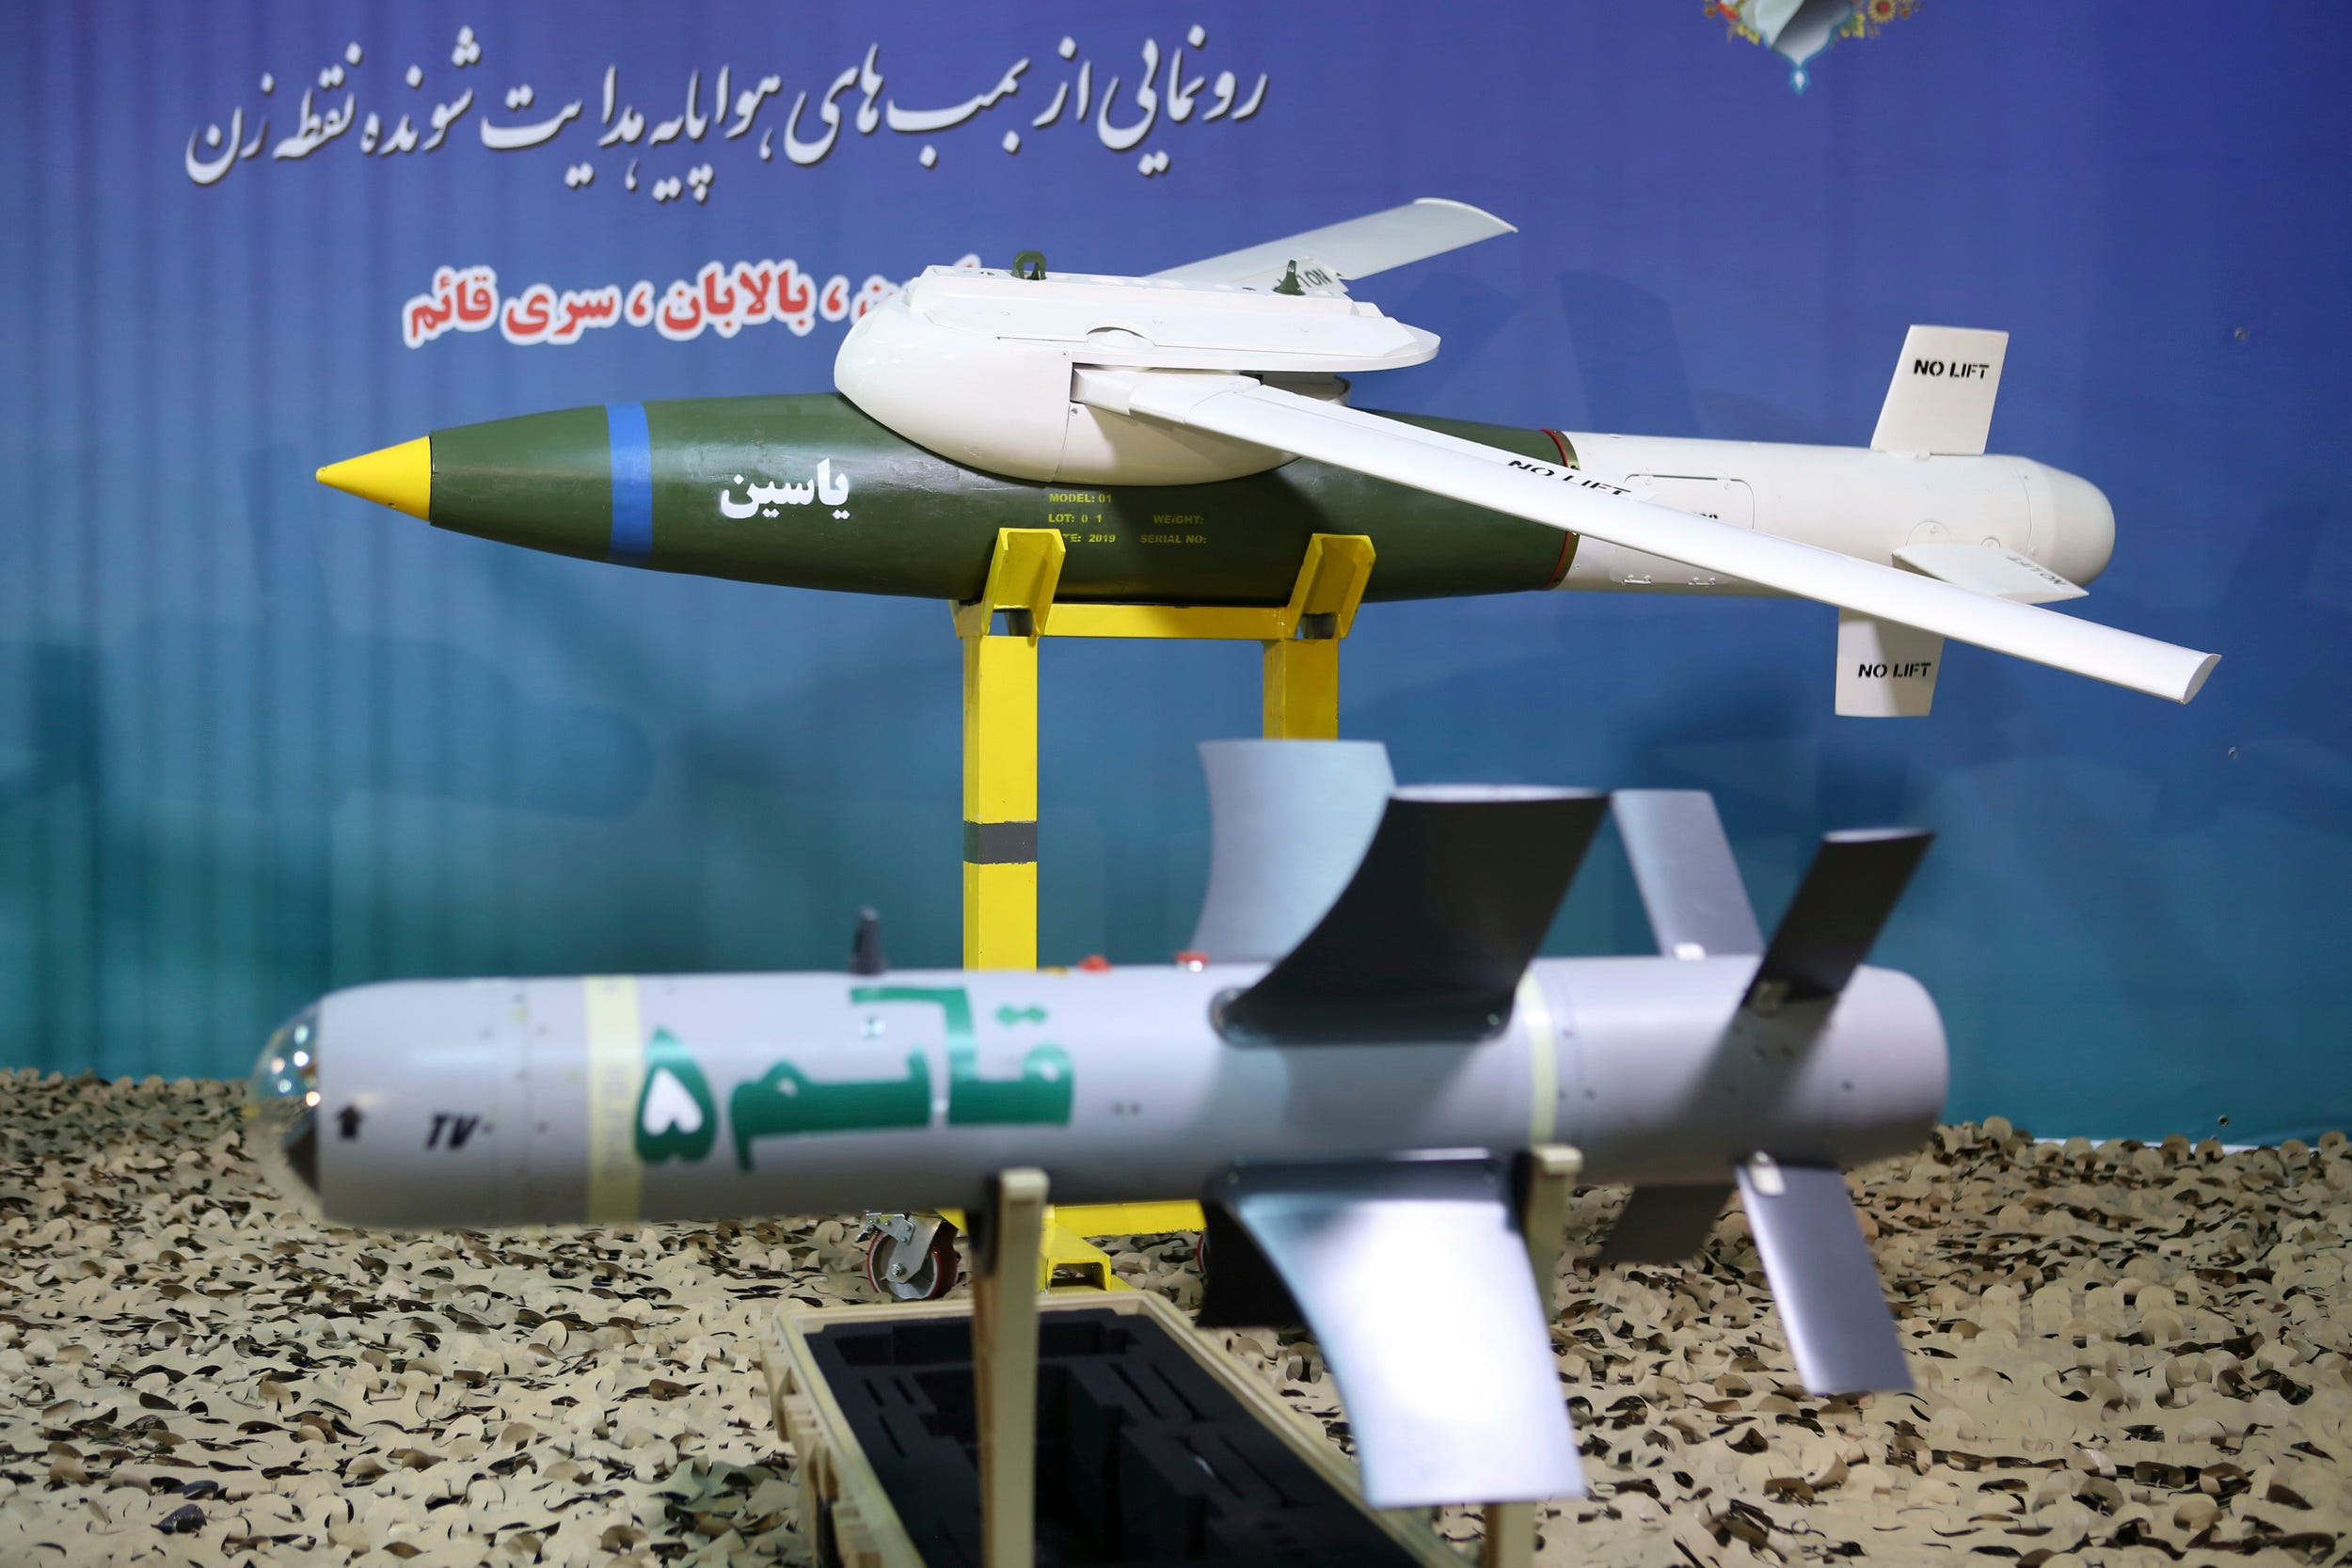 Stakes raised in US, Iran tensions: Drone war takes flight